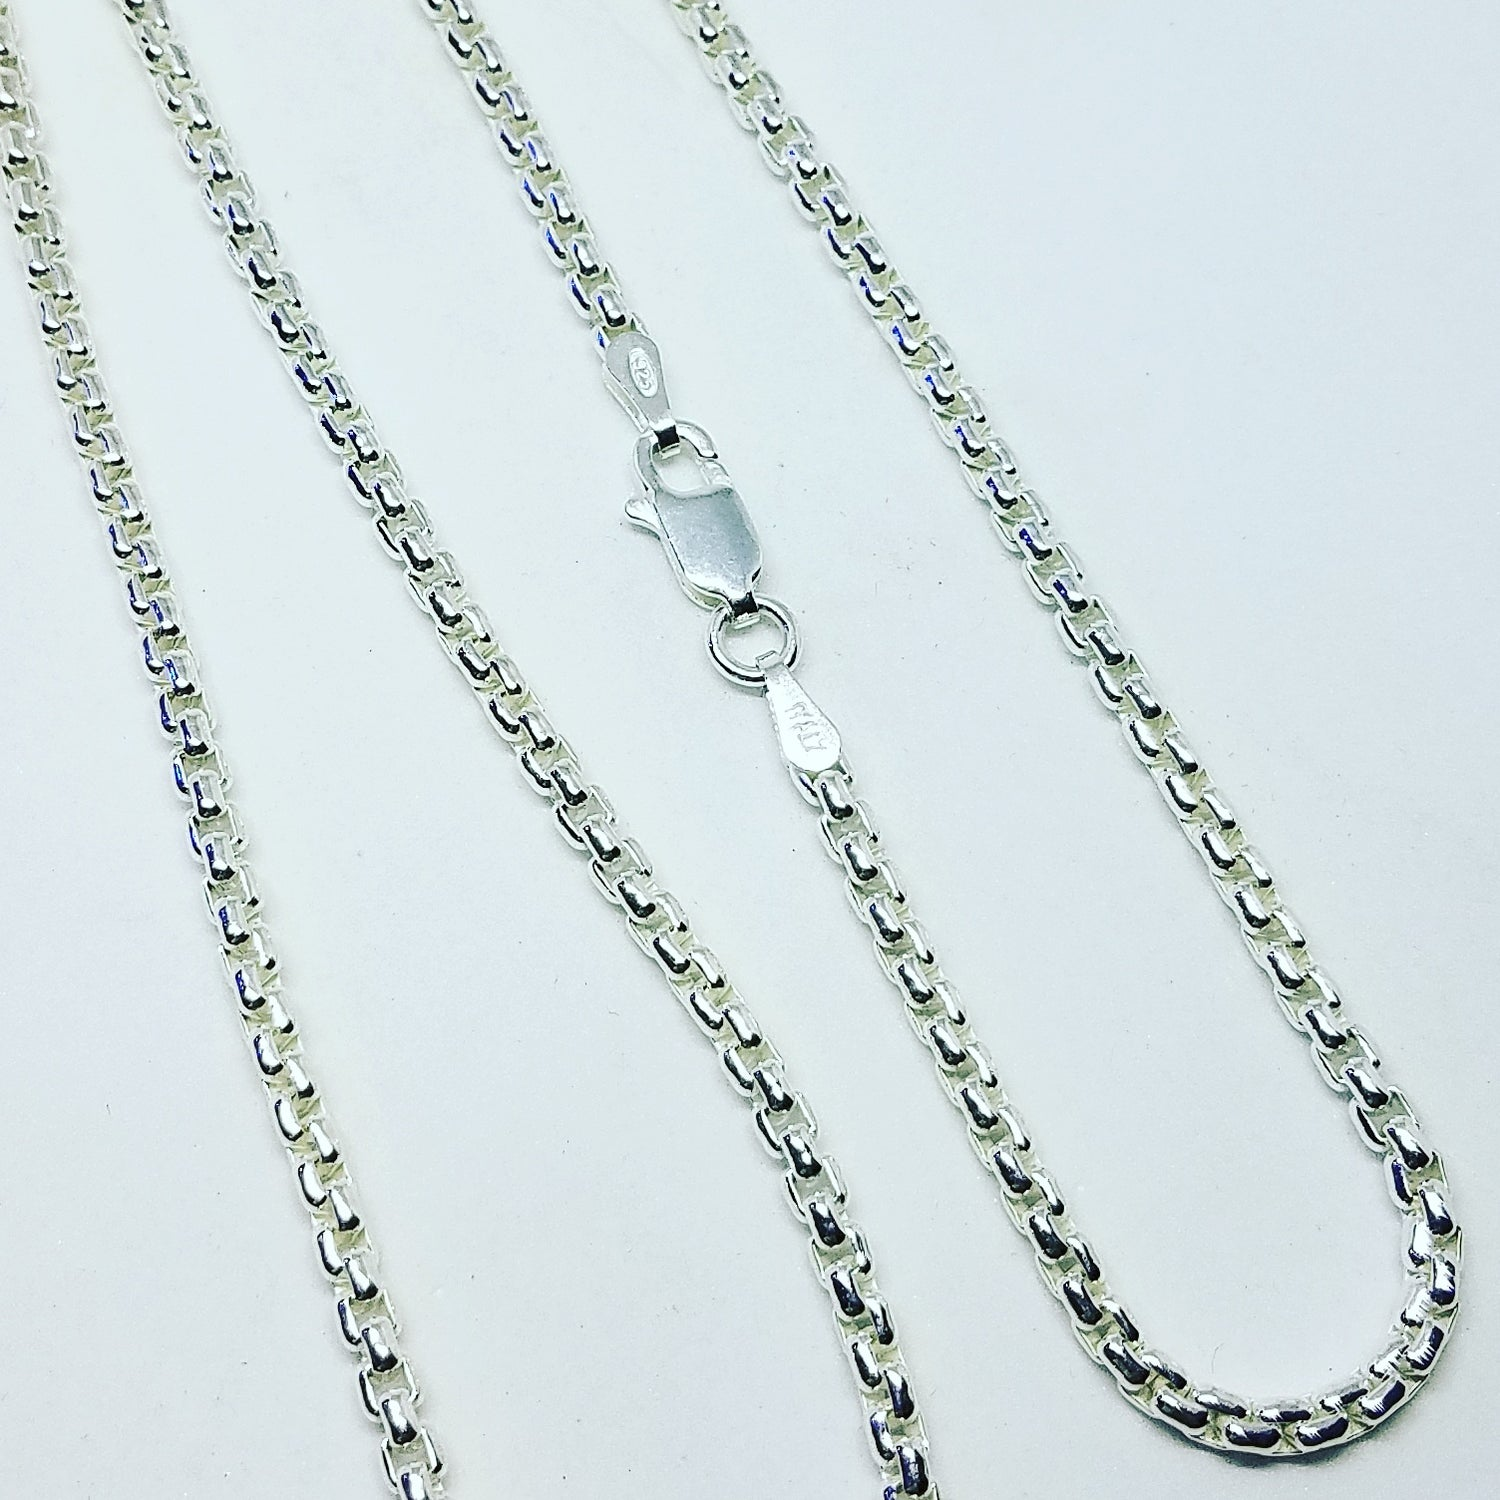 Image of 2.5mm Rounded box chain